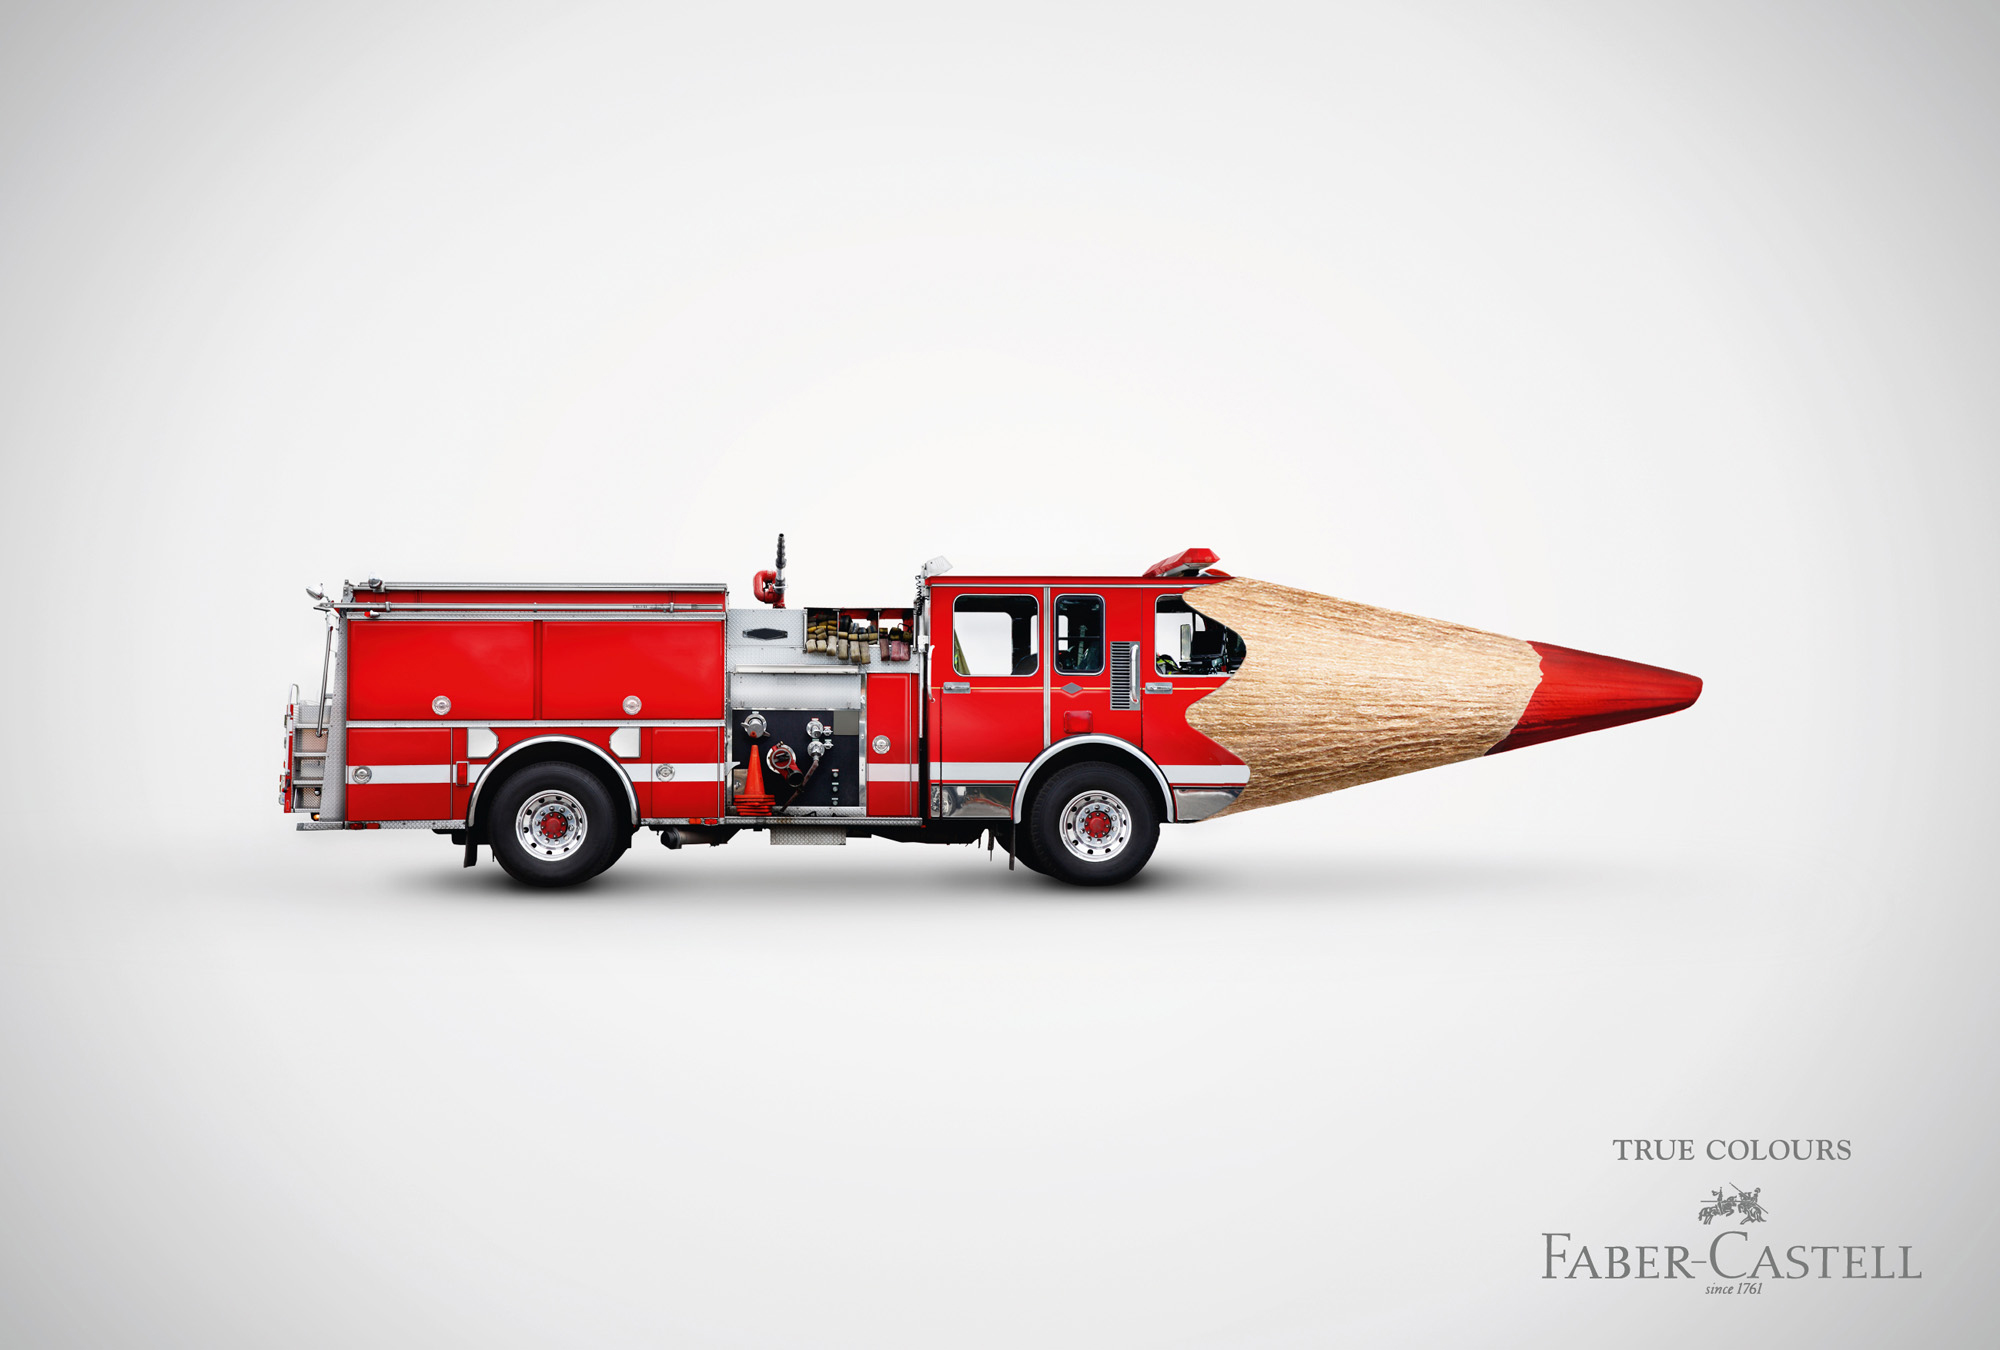 pencils---faber-castell---red